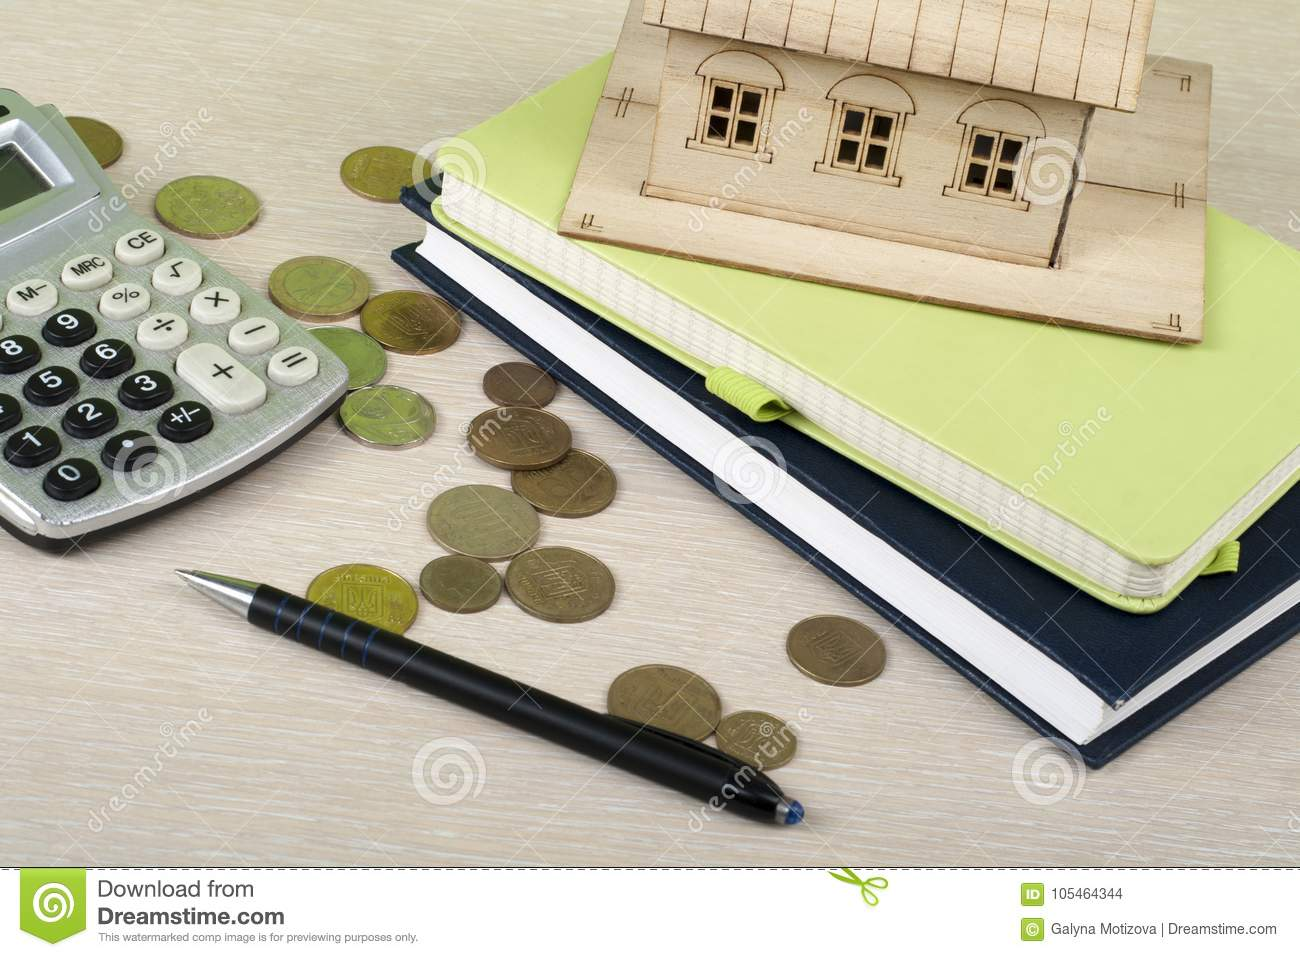 Home savings, budget concept. Model house, notepad, calculator,pen and coins on wooden office desk table.